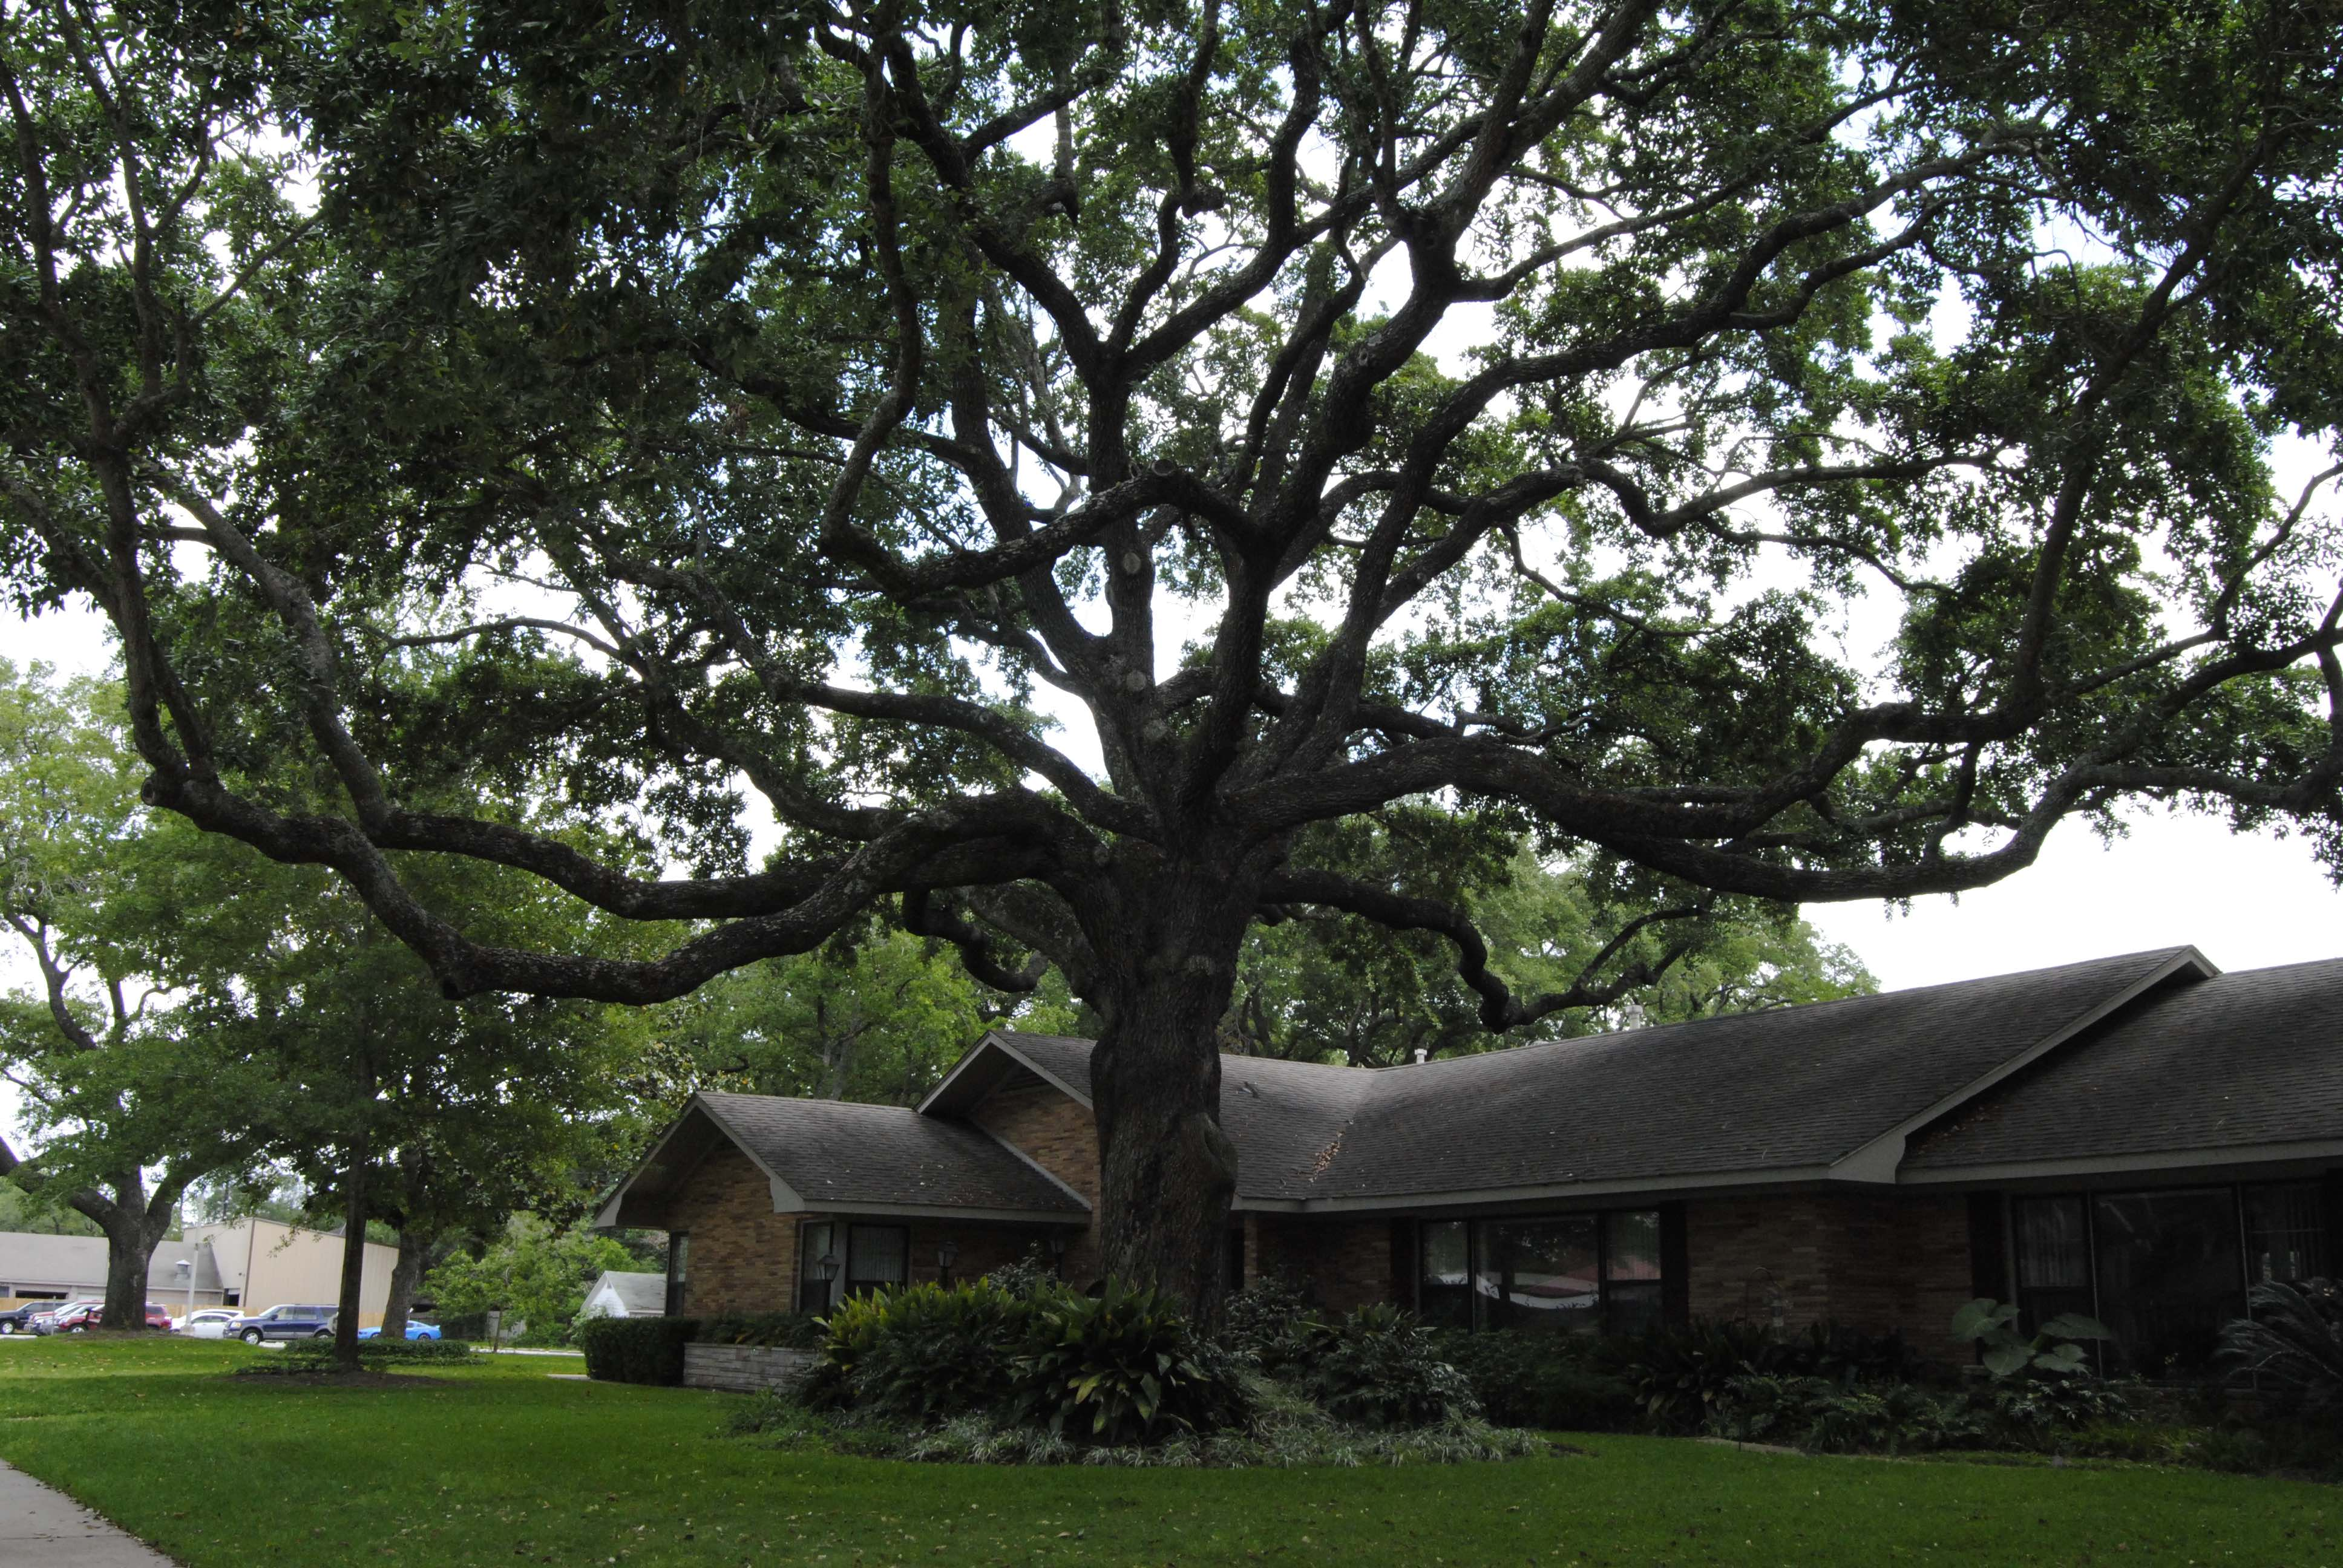 9.	Stand of Live Oaks